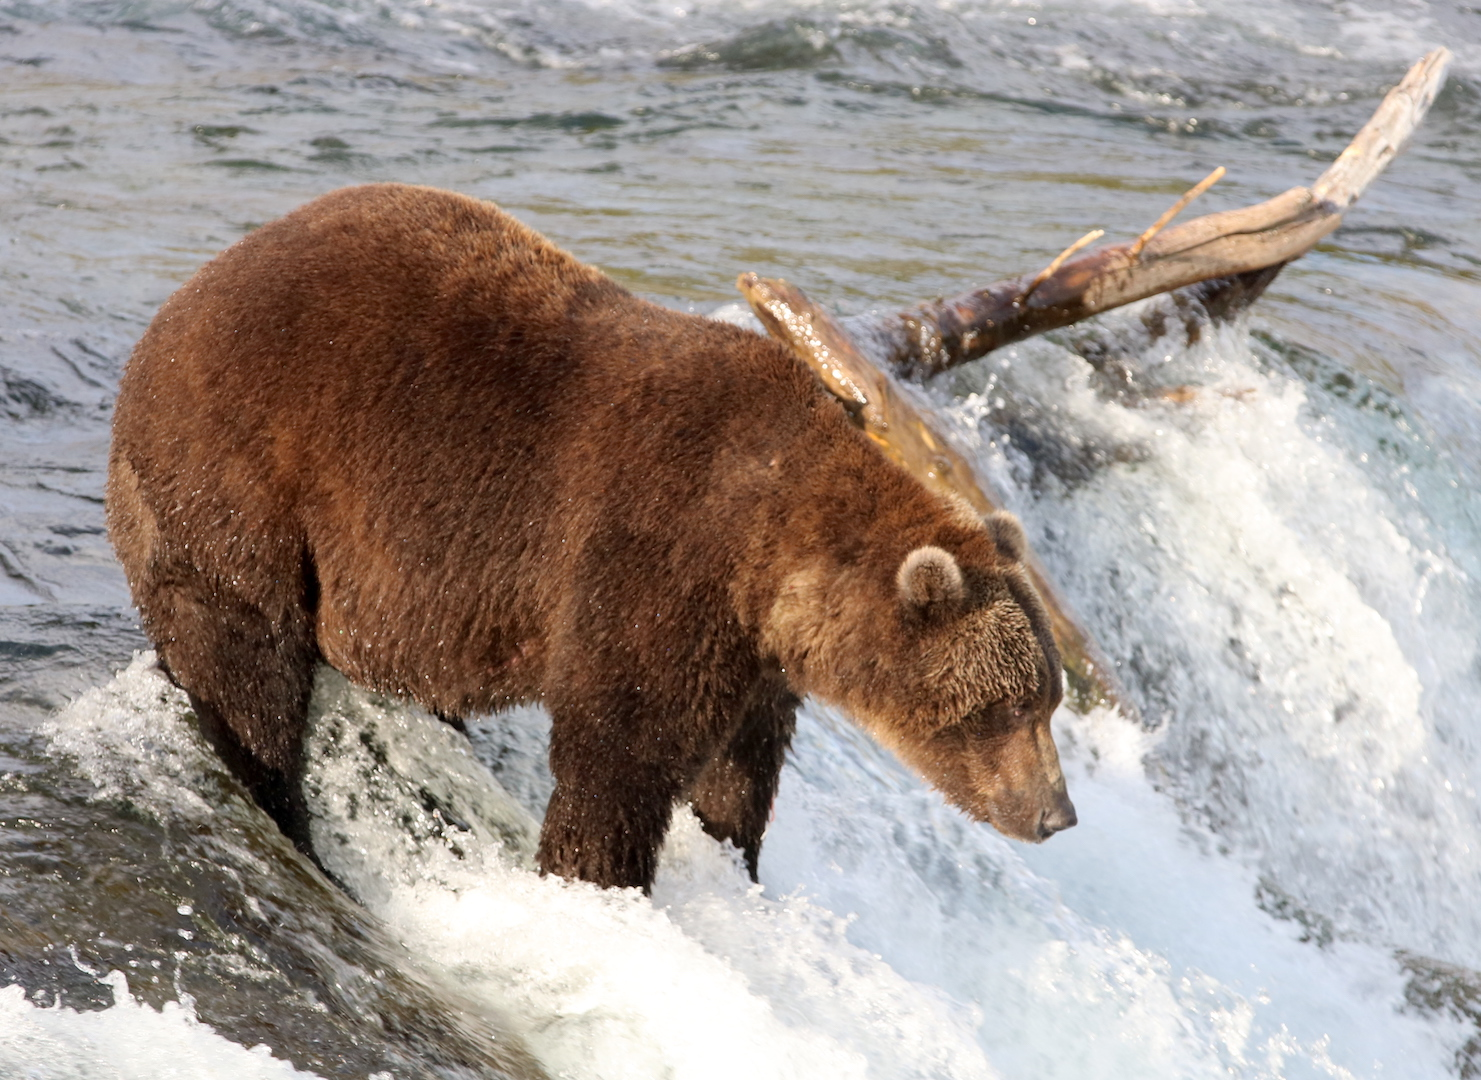 profile of brown bear standing on edge of waterfall